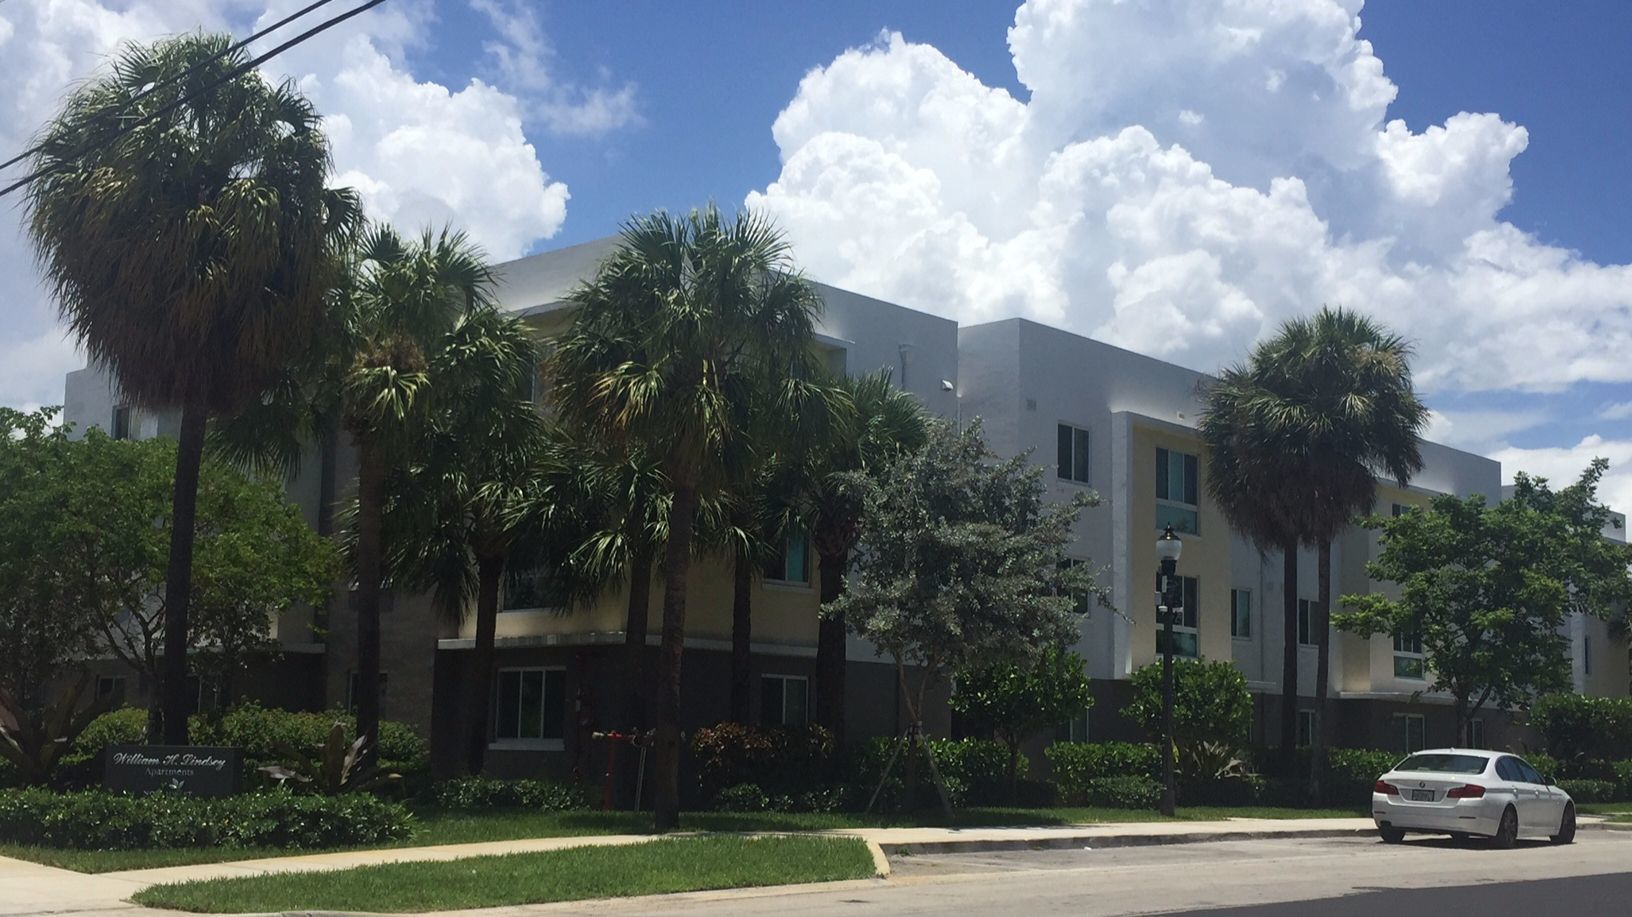 northwest gardens low-income housing complete in fort lauderdale